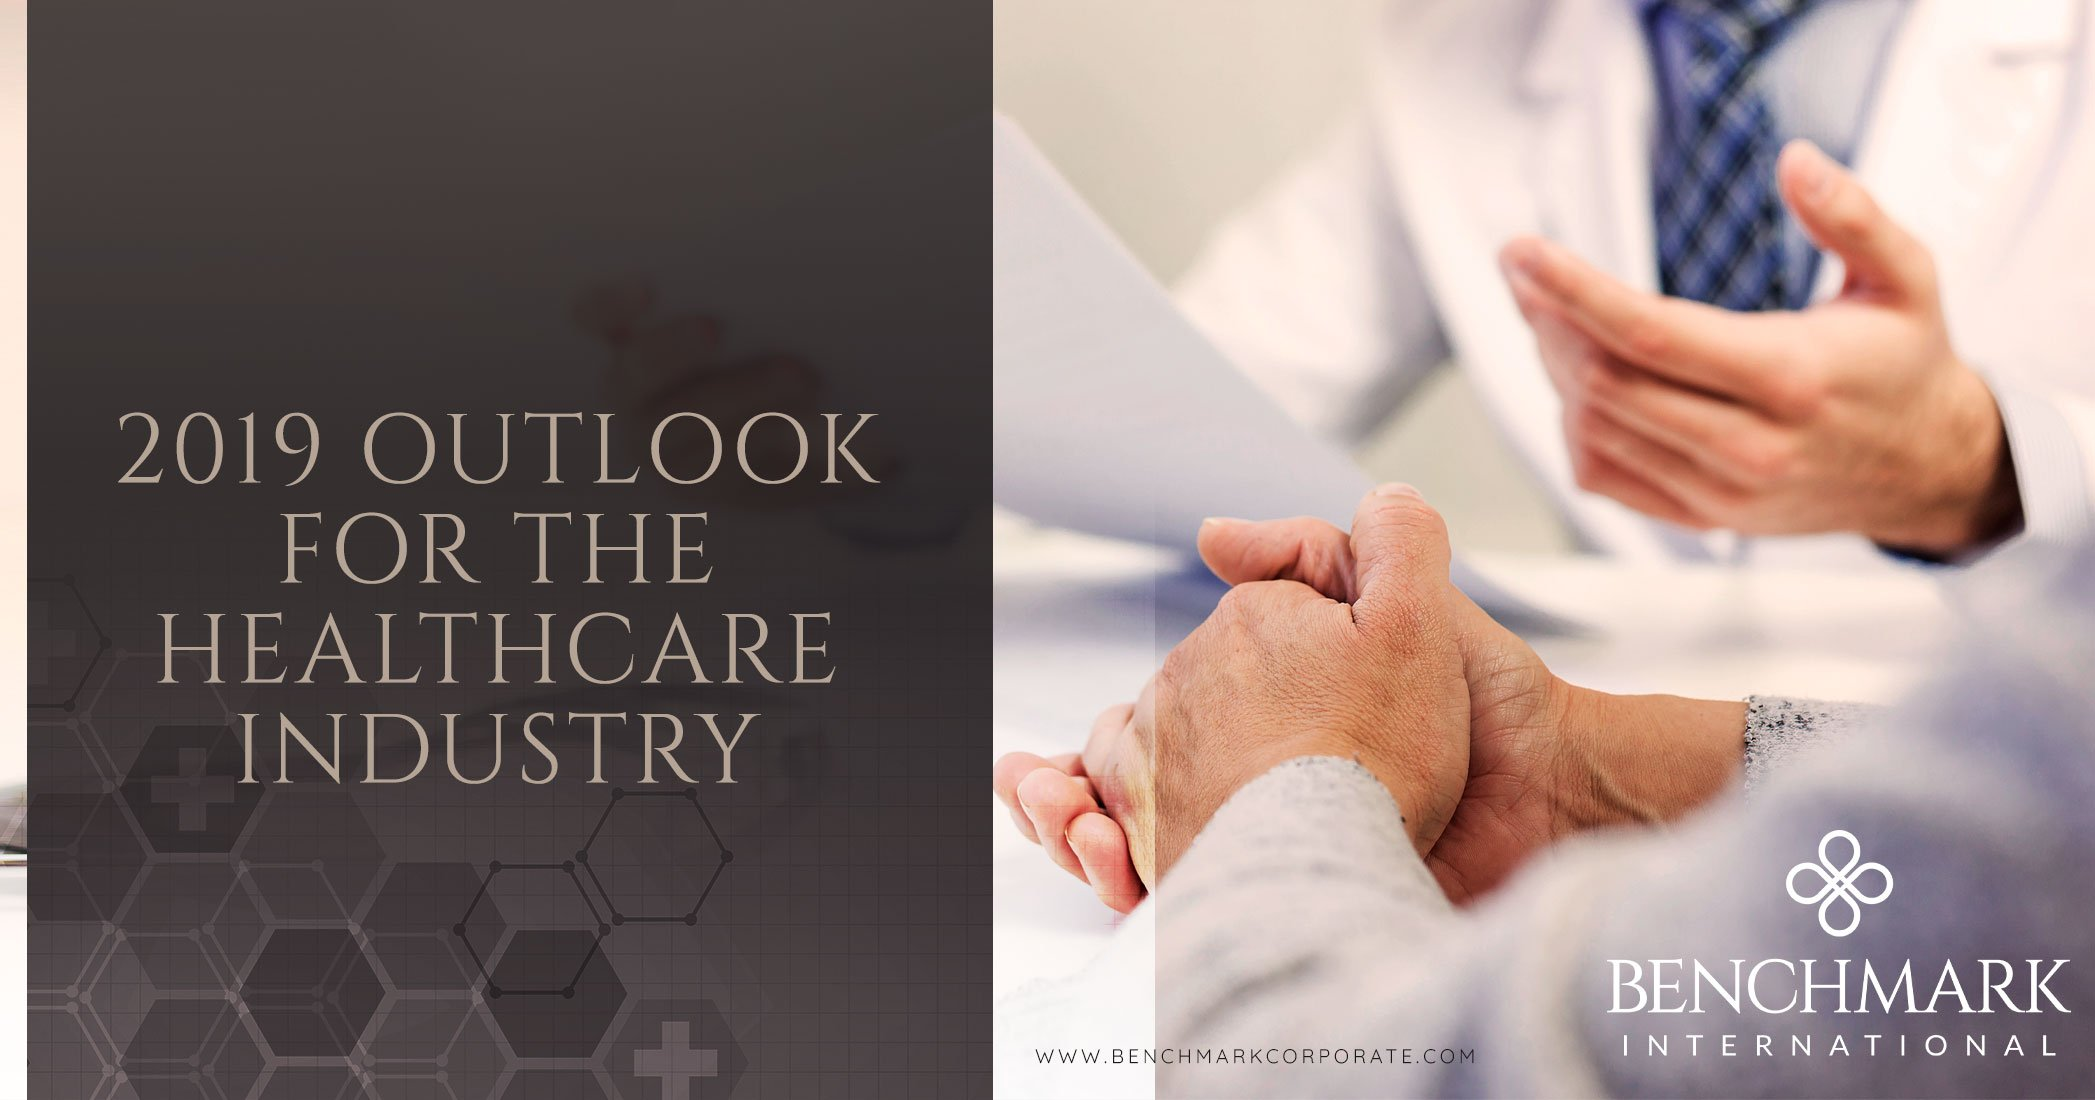 2019 Outlook For The Healthcare Industry